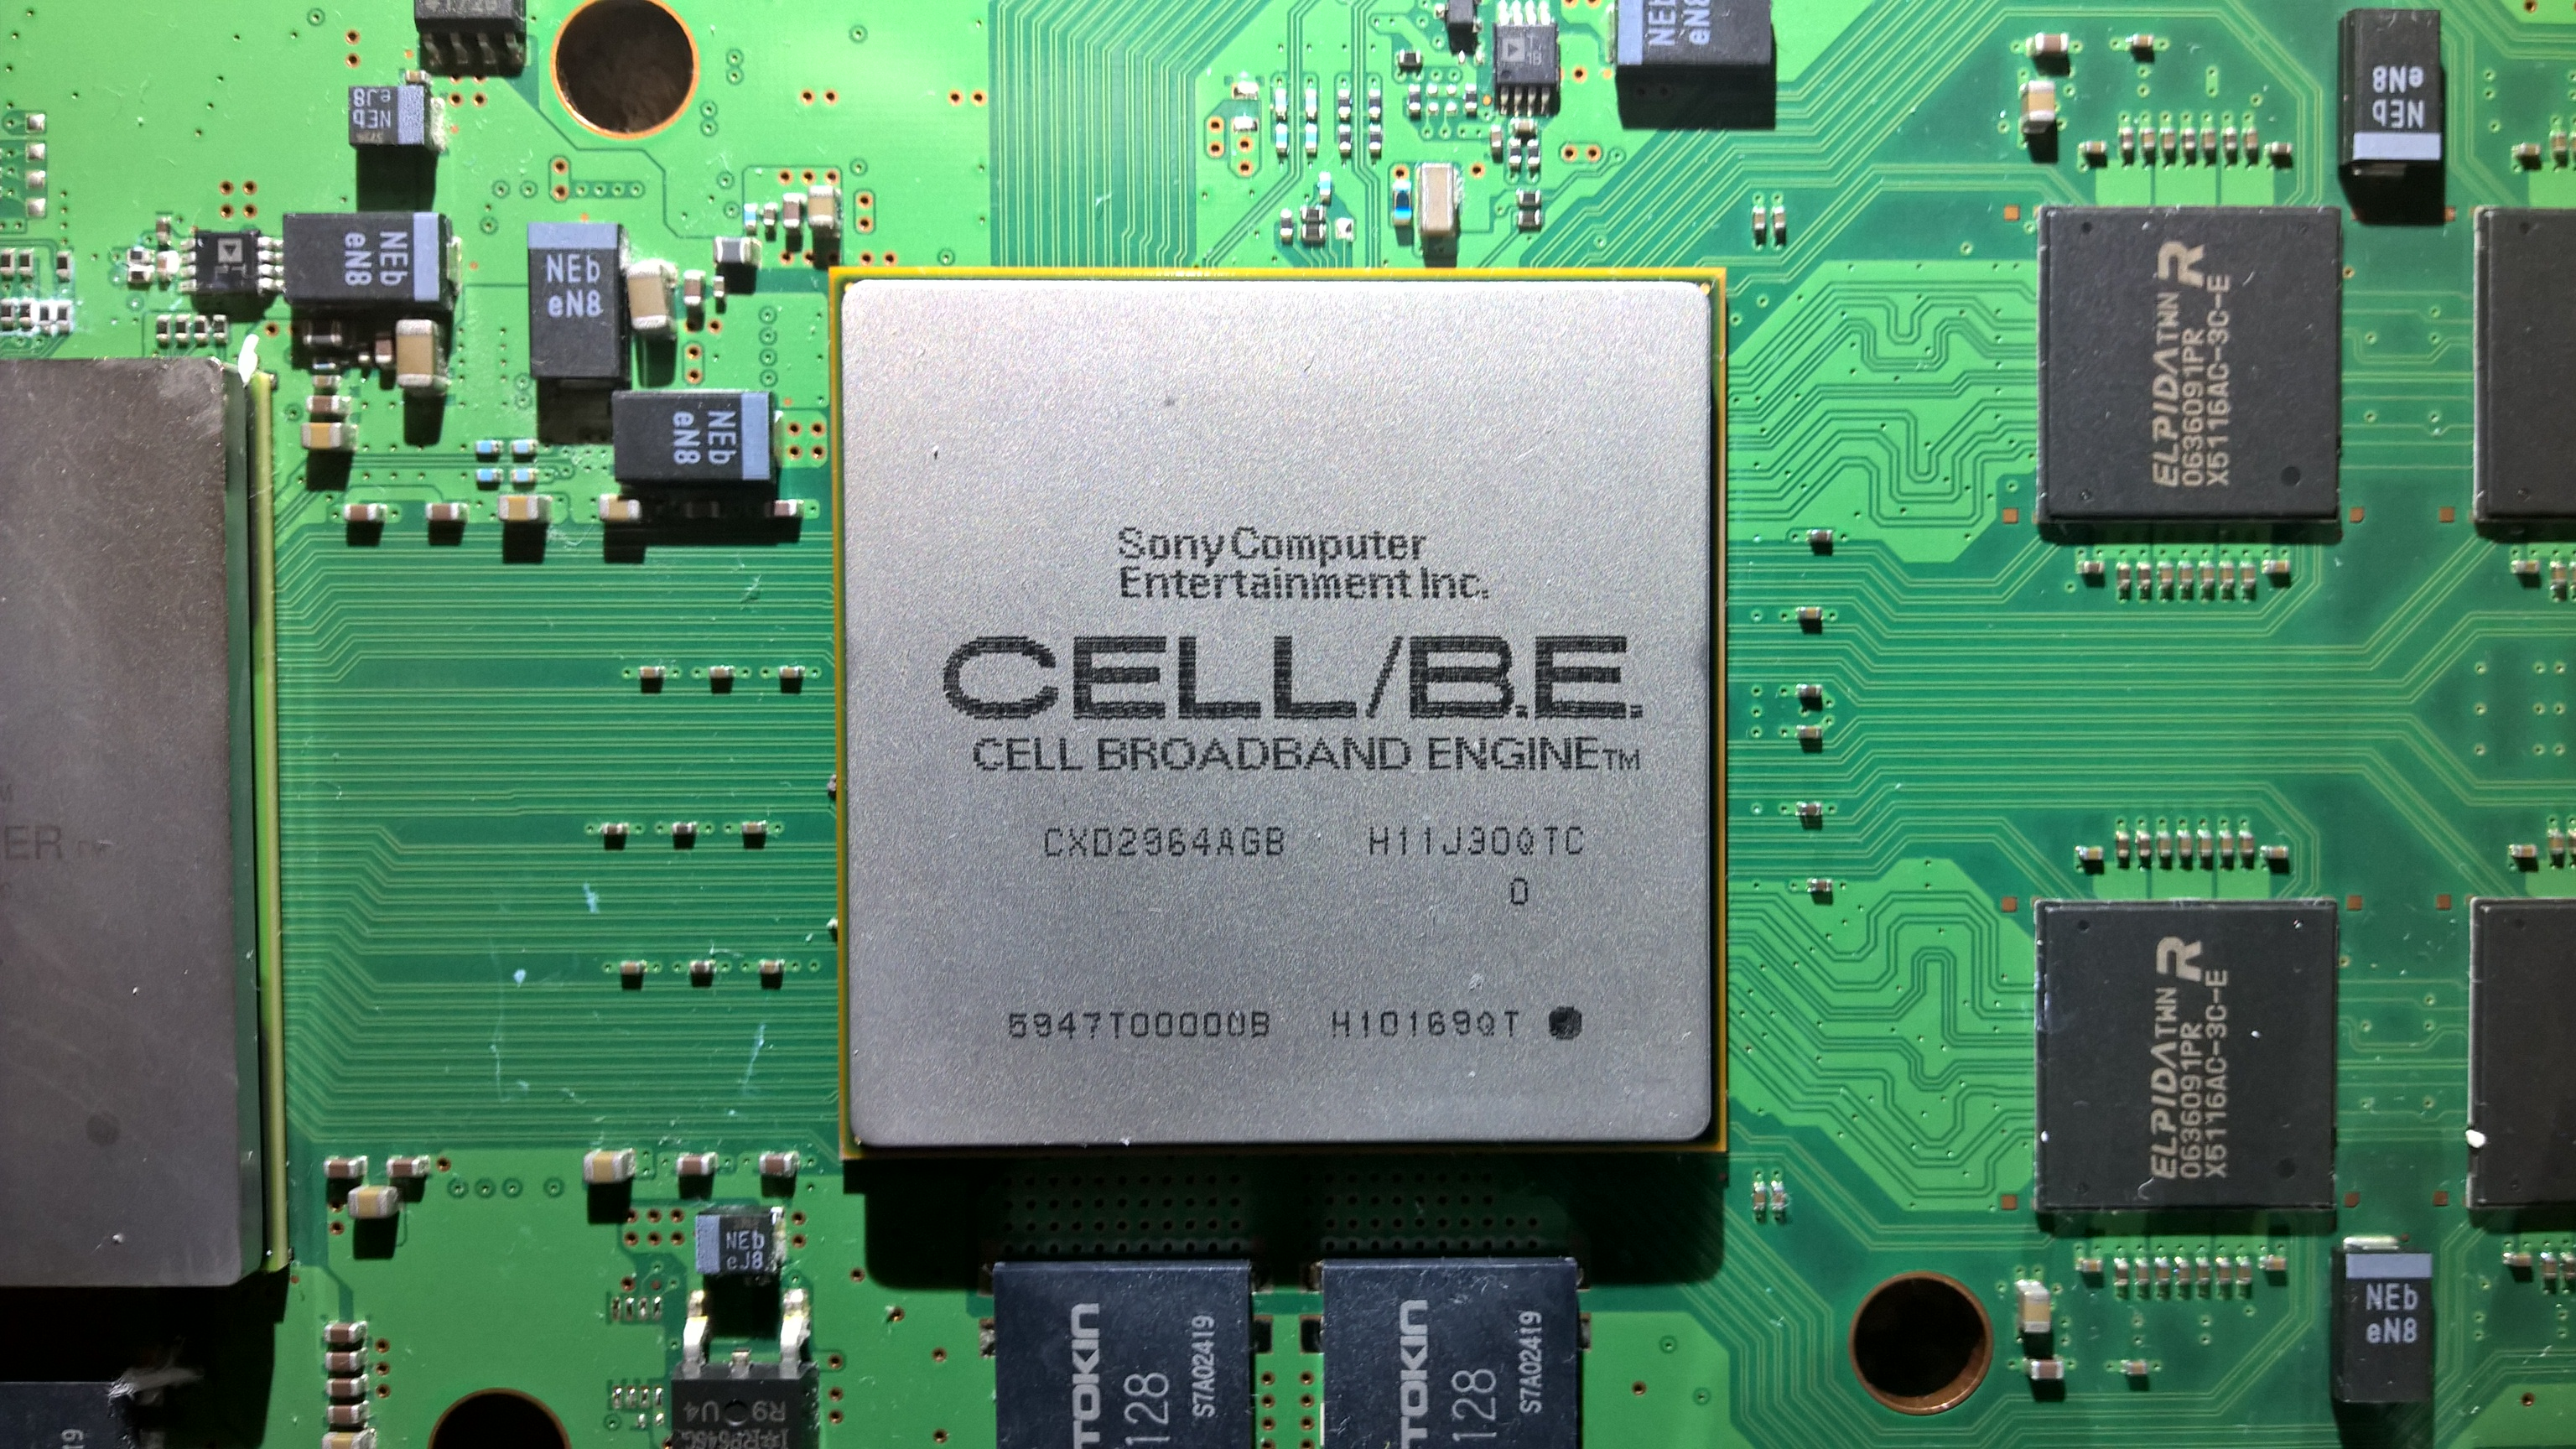 File:CELL BE processor PS3 board.jpg - Wikimedia Commons